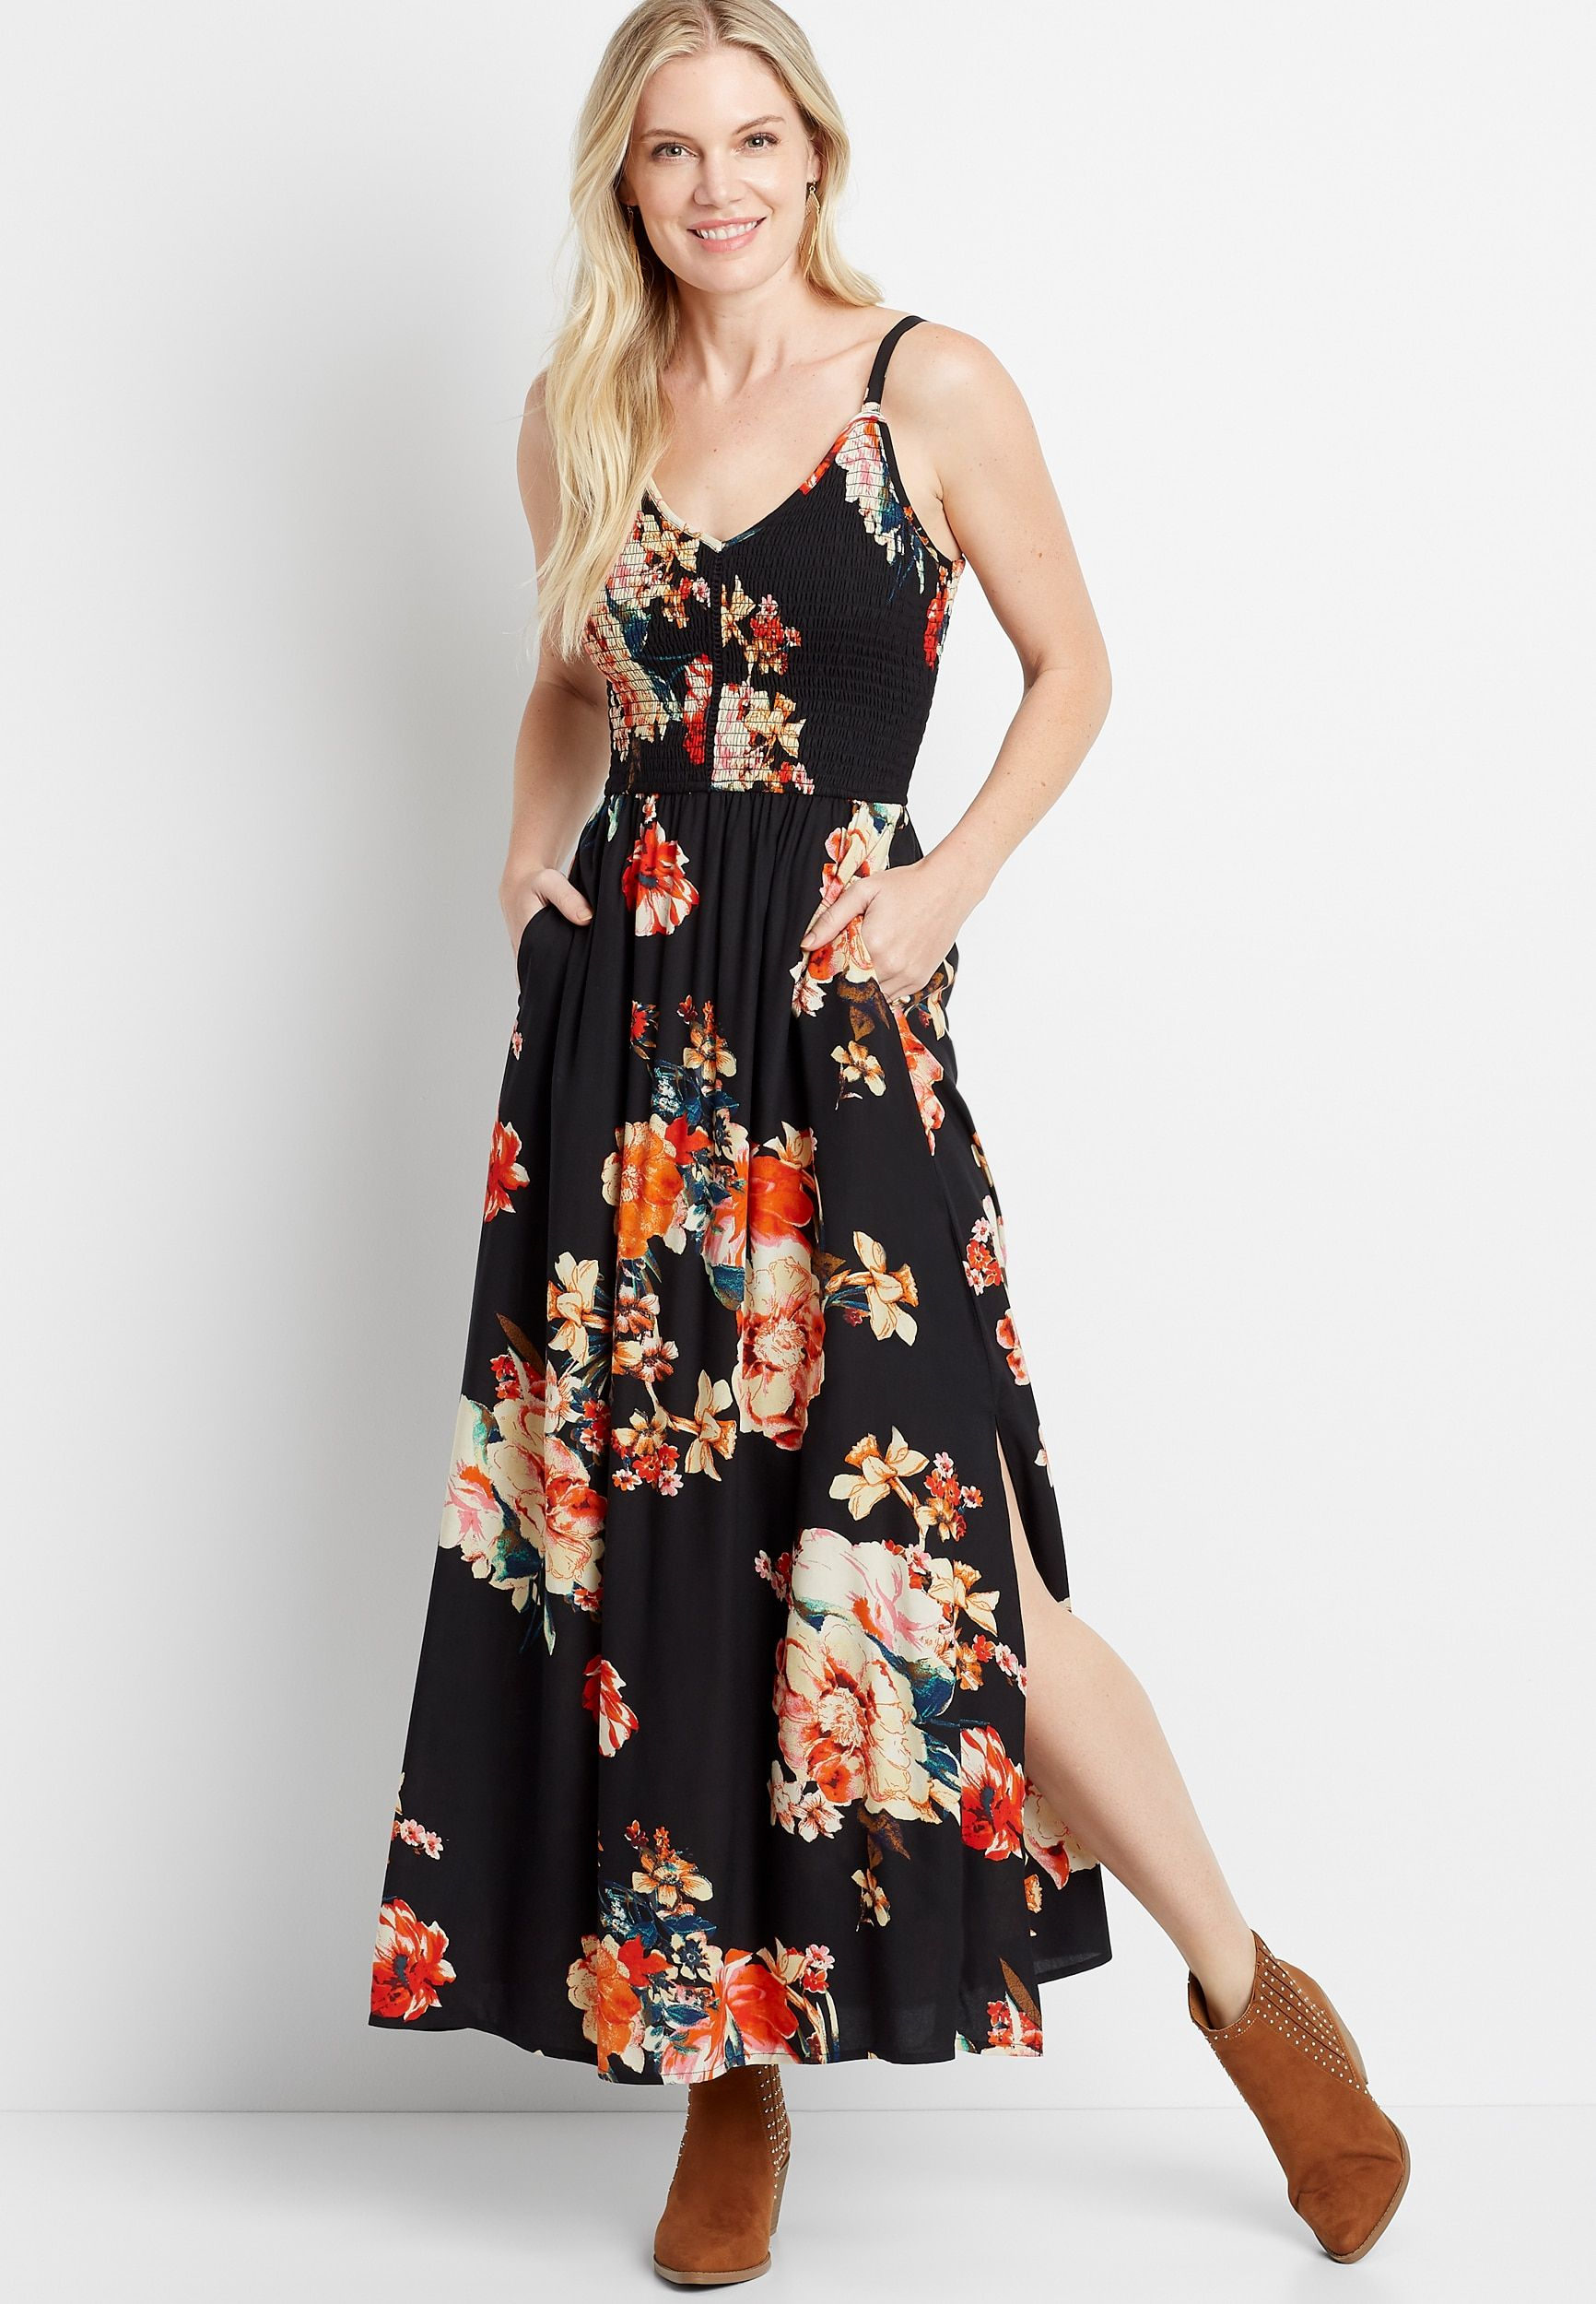 Black floral smocked top maxi dress in 2020 maxi dress